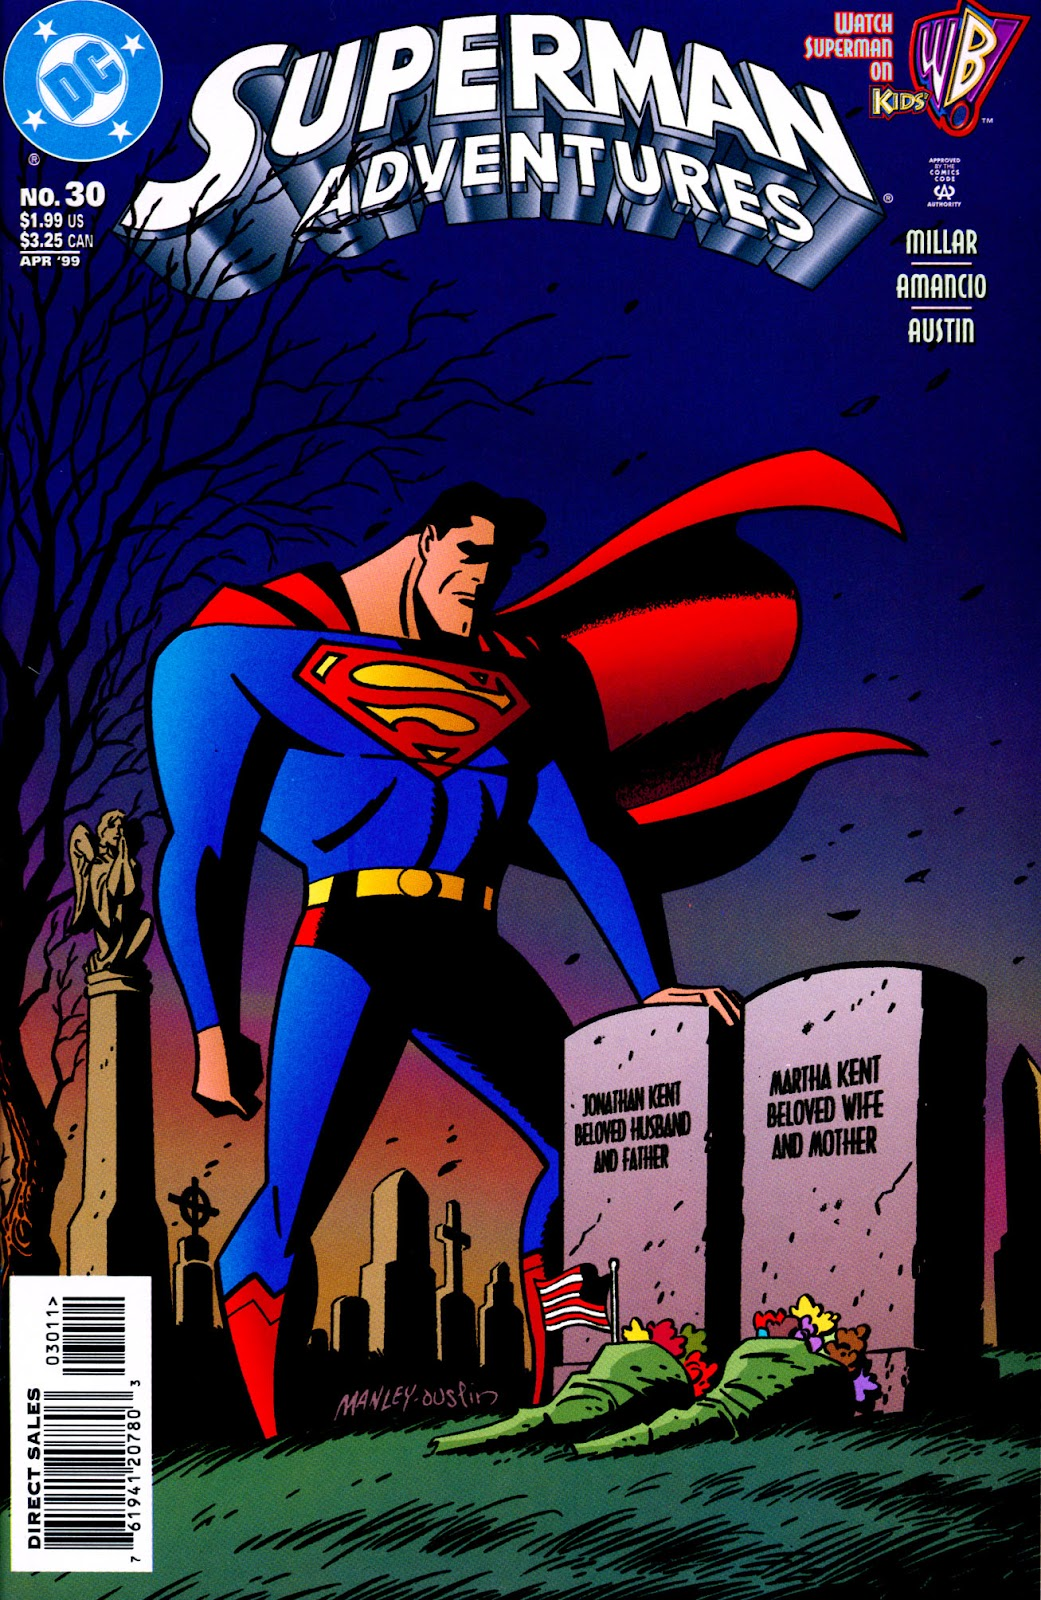 Superman Adventures issue 30 - Page 1